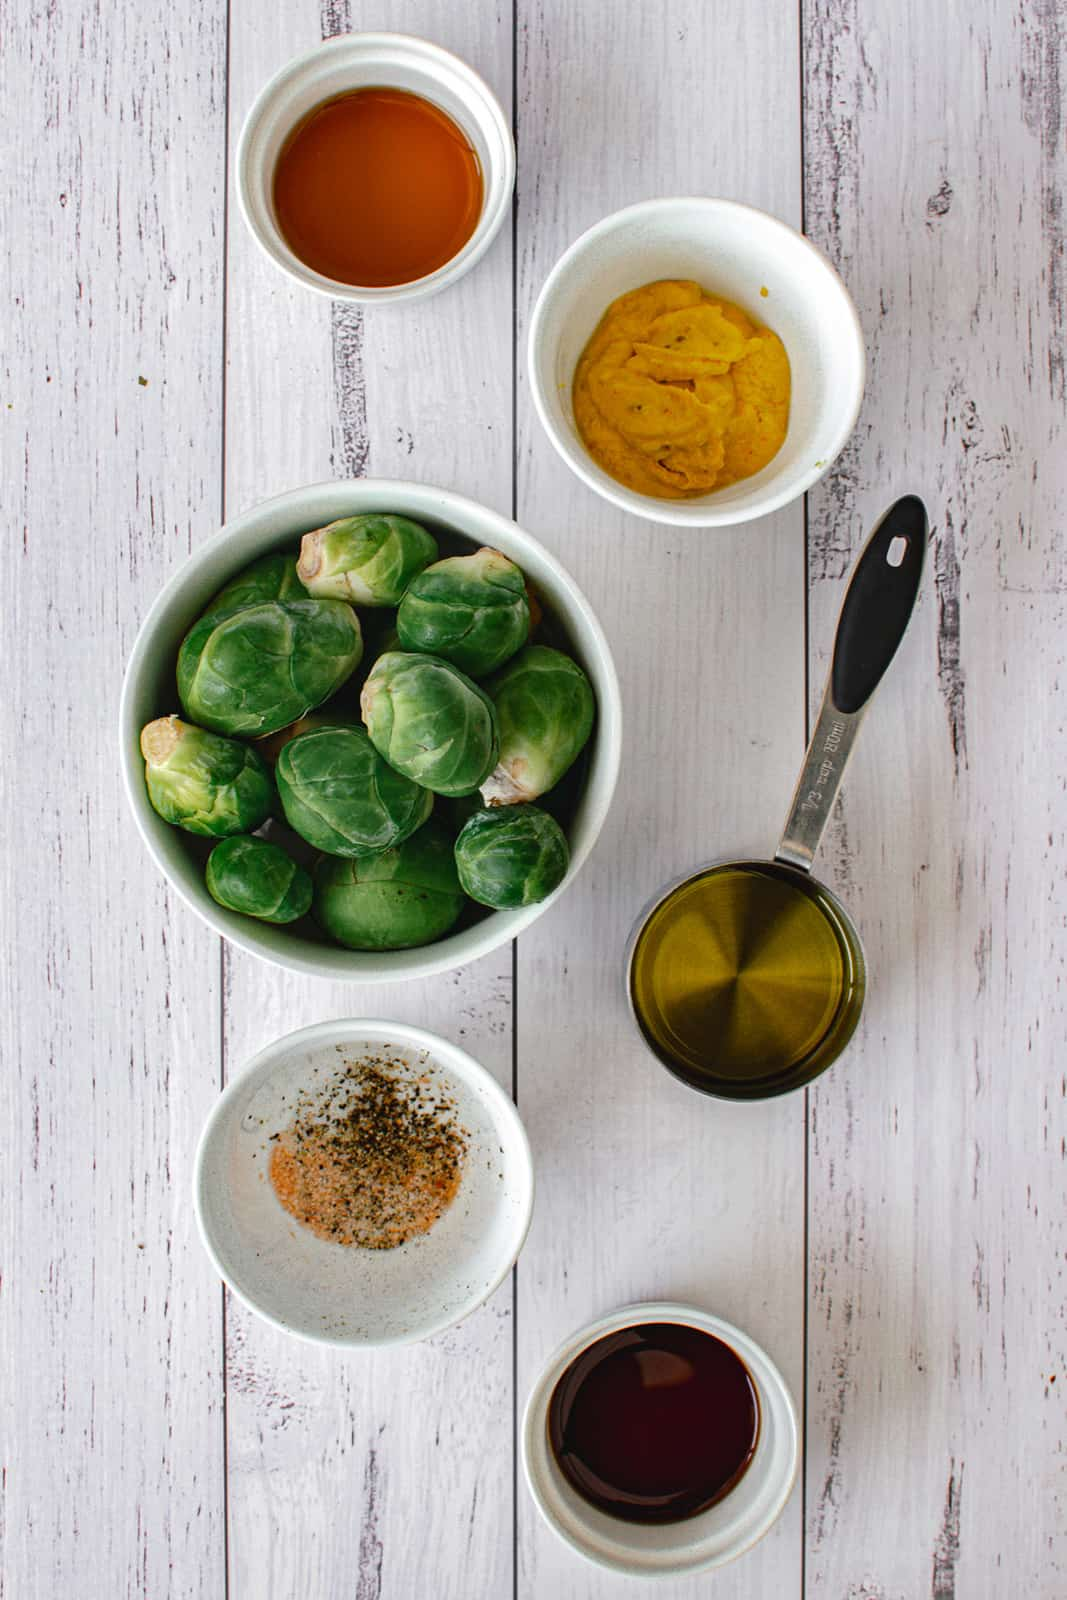 ingredients to make brussels sprouts with maple balsamic dressing